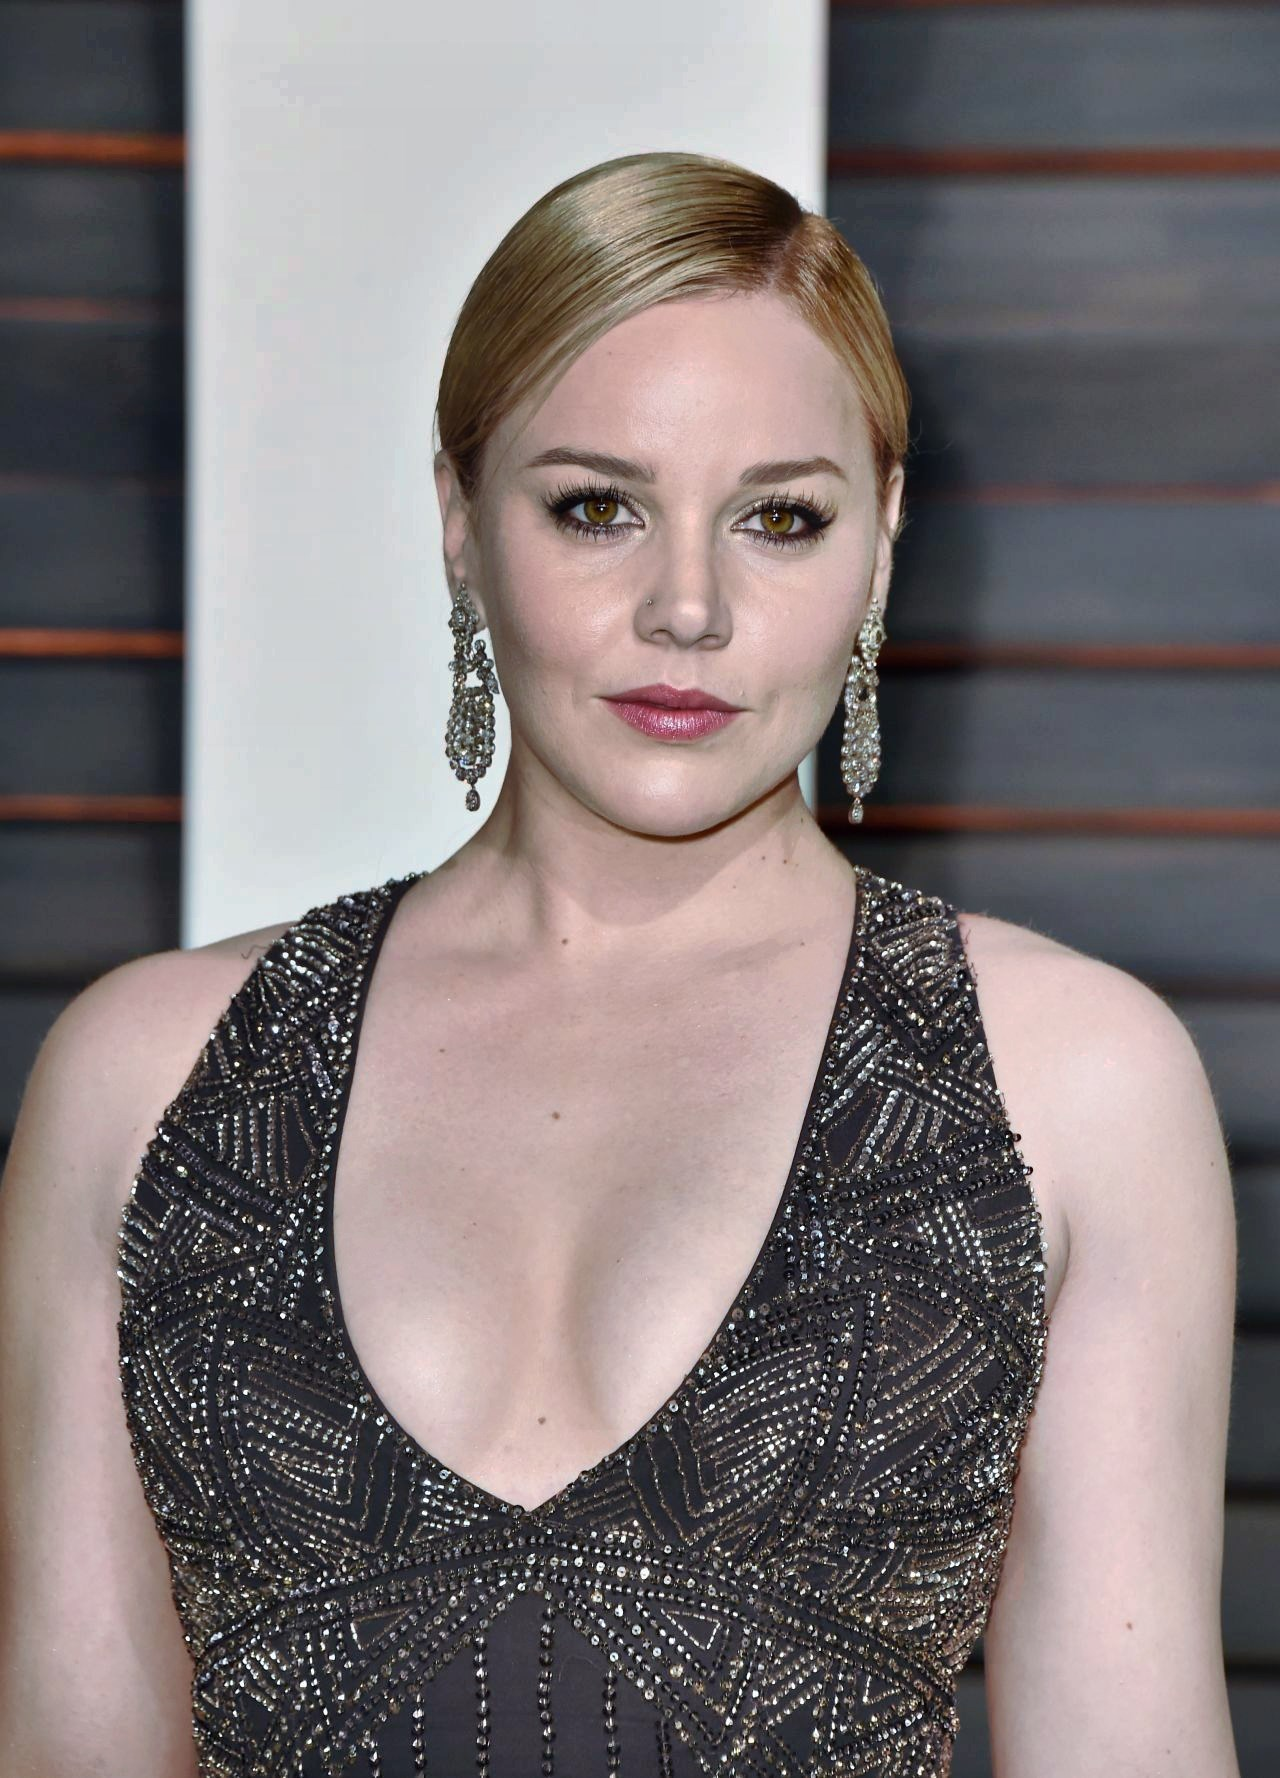 Abbie Cornish | Known people - famous people news and ... Abbie Cornish